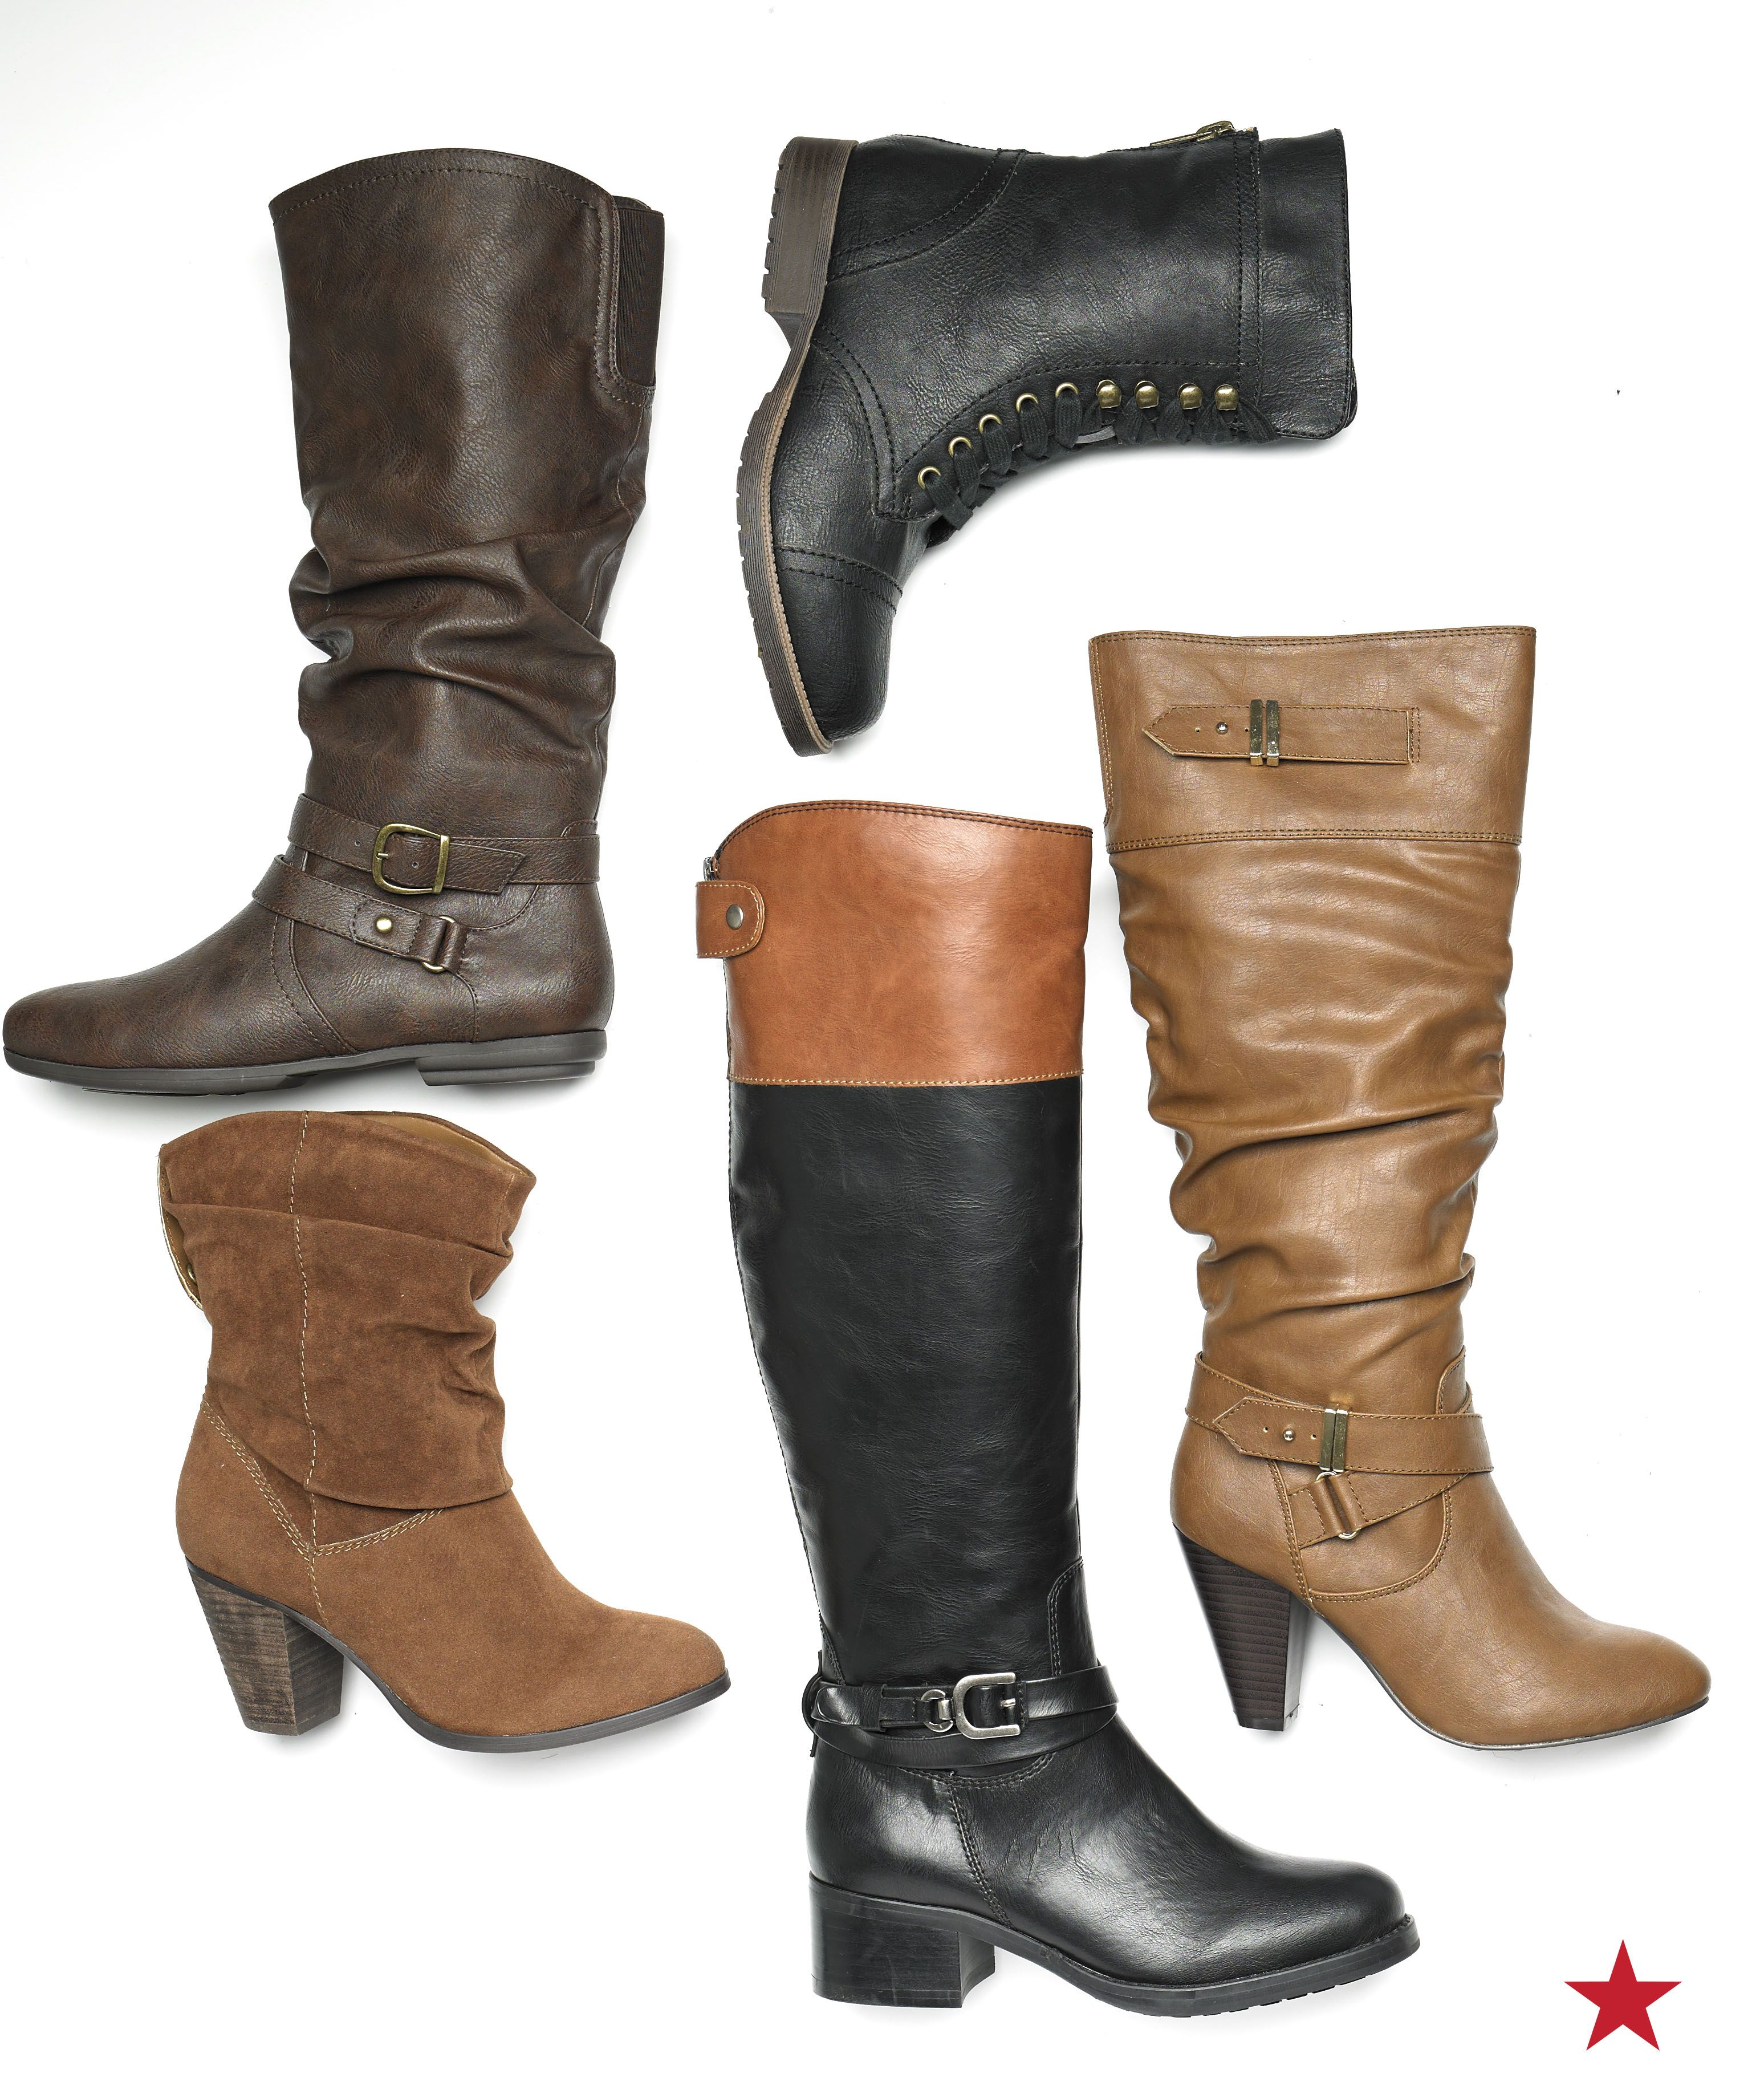 e443fc7d0ad Black Friday Sneak Peek: 19.99 Select Women's Boots from Rampage ...